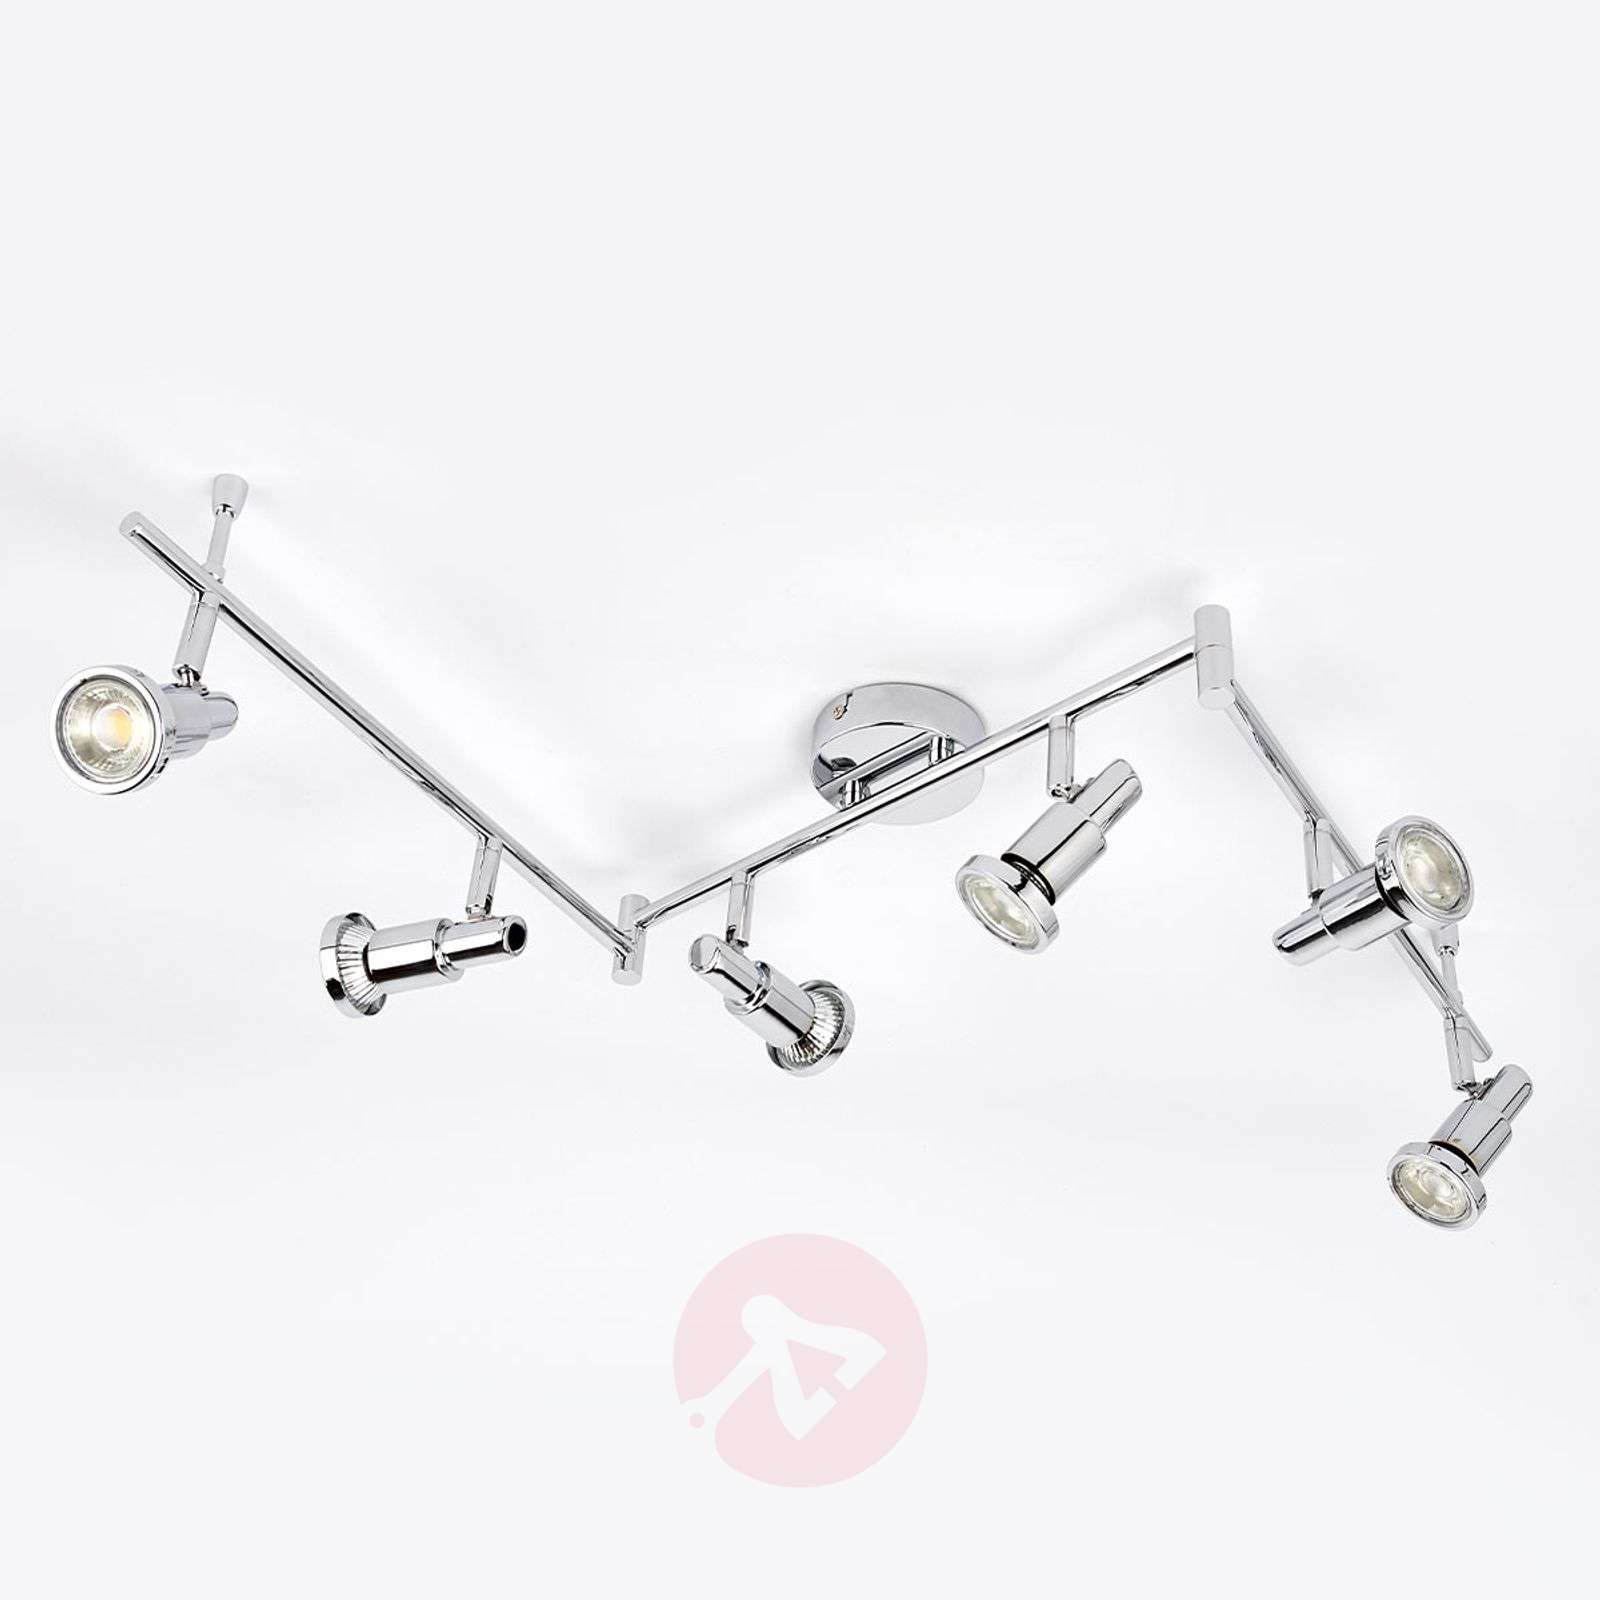 LED ceiling lamp Thom with adjustable arms, 6-bulb-9954016-012